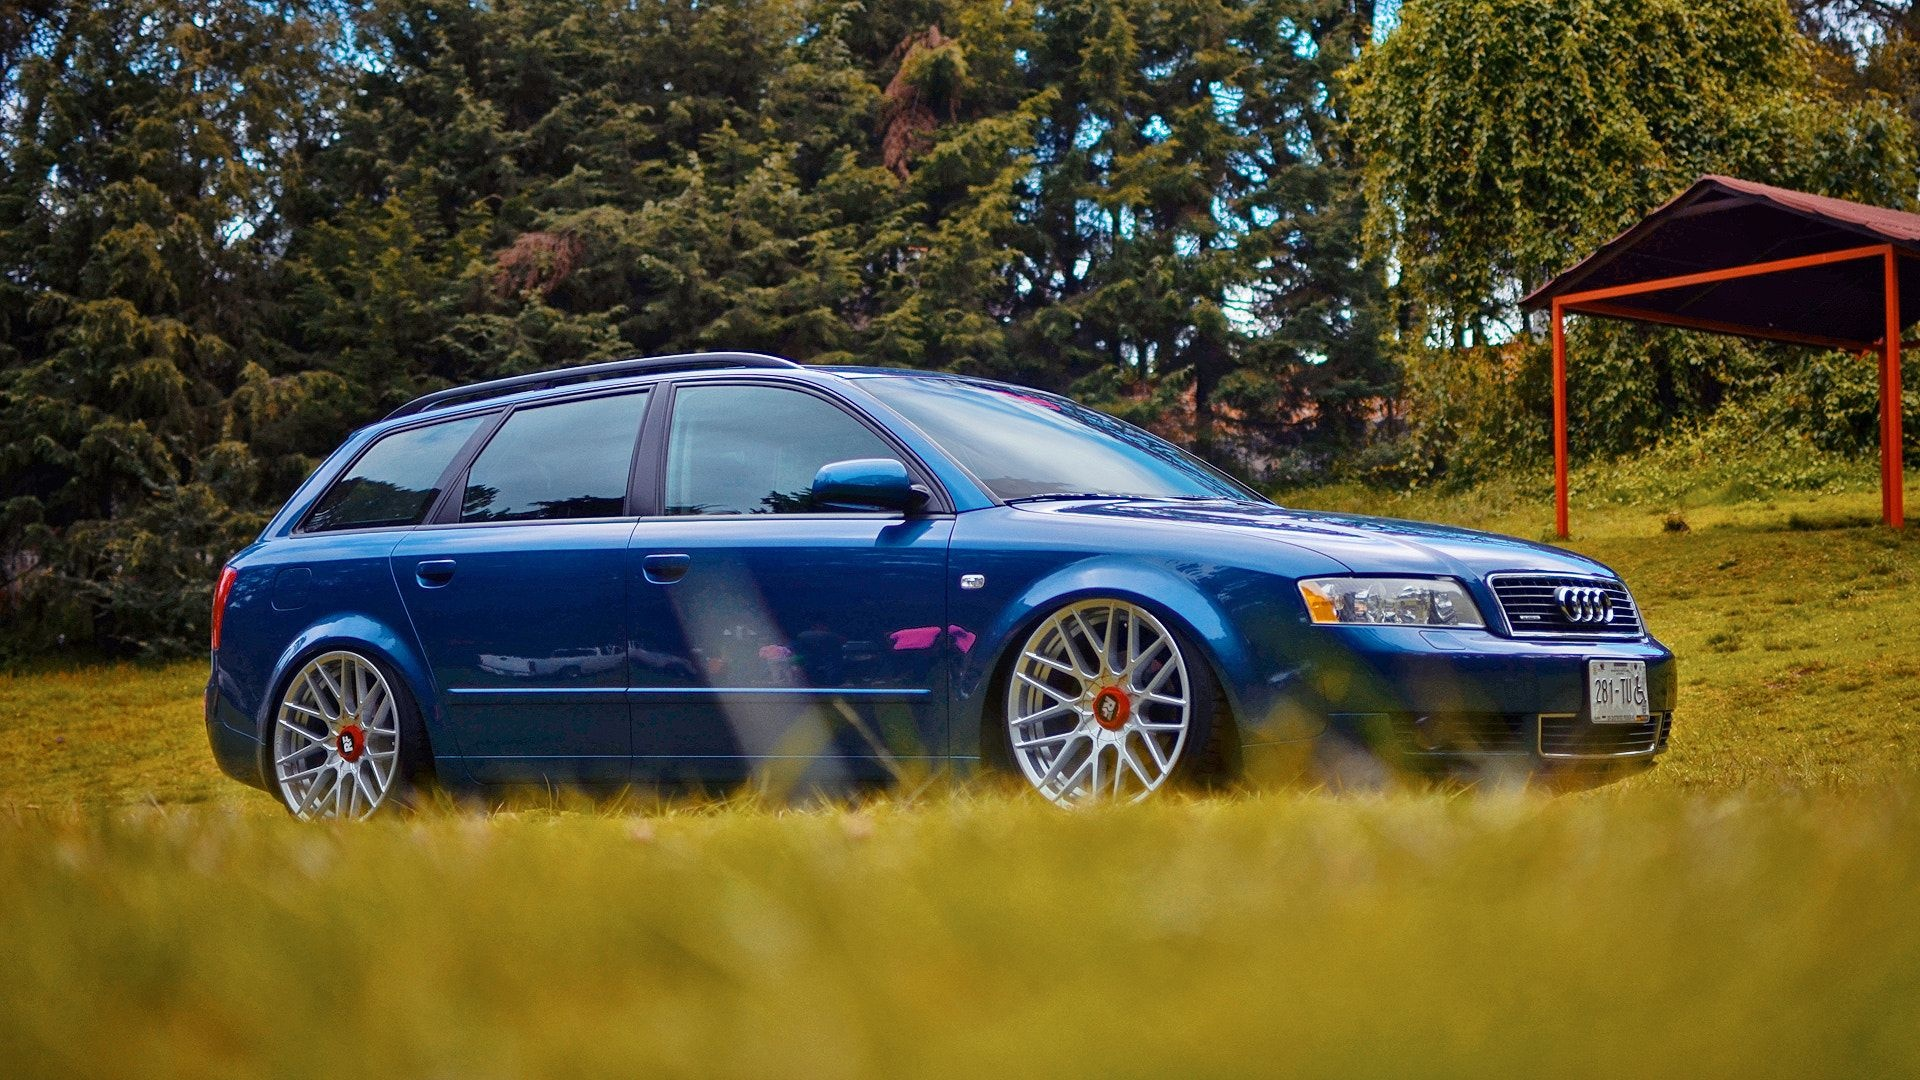 Audi A4 Estate Modified Lovely Audi Avant Amazing Audi Avant Bagged Sittin In Rse Rotiforms-1840 Of Luxury Audi A4 Estate Modified